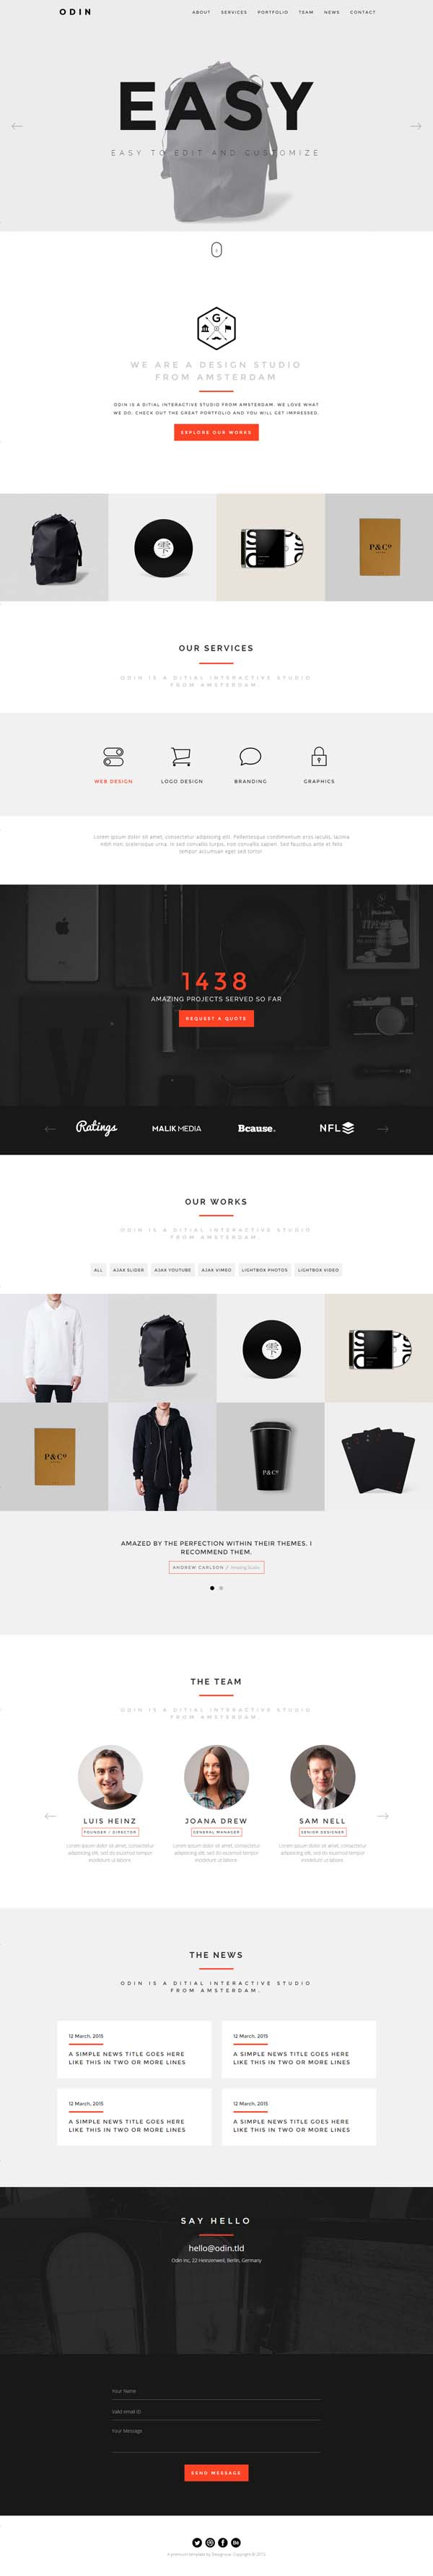 ODIN - Simple & Easy Creative One Page Template